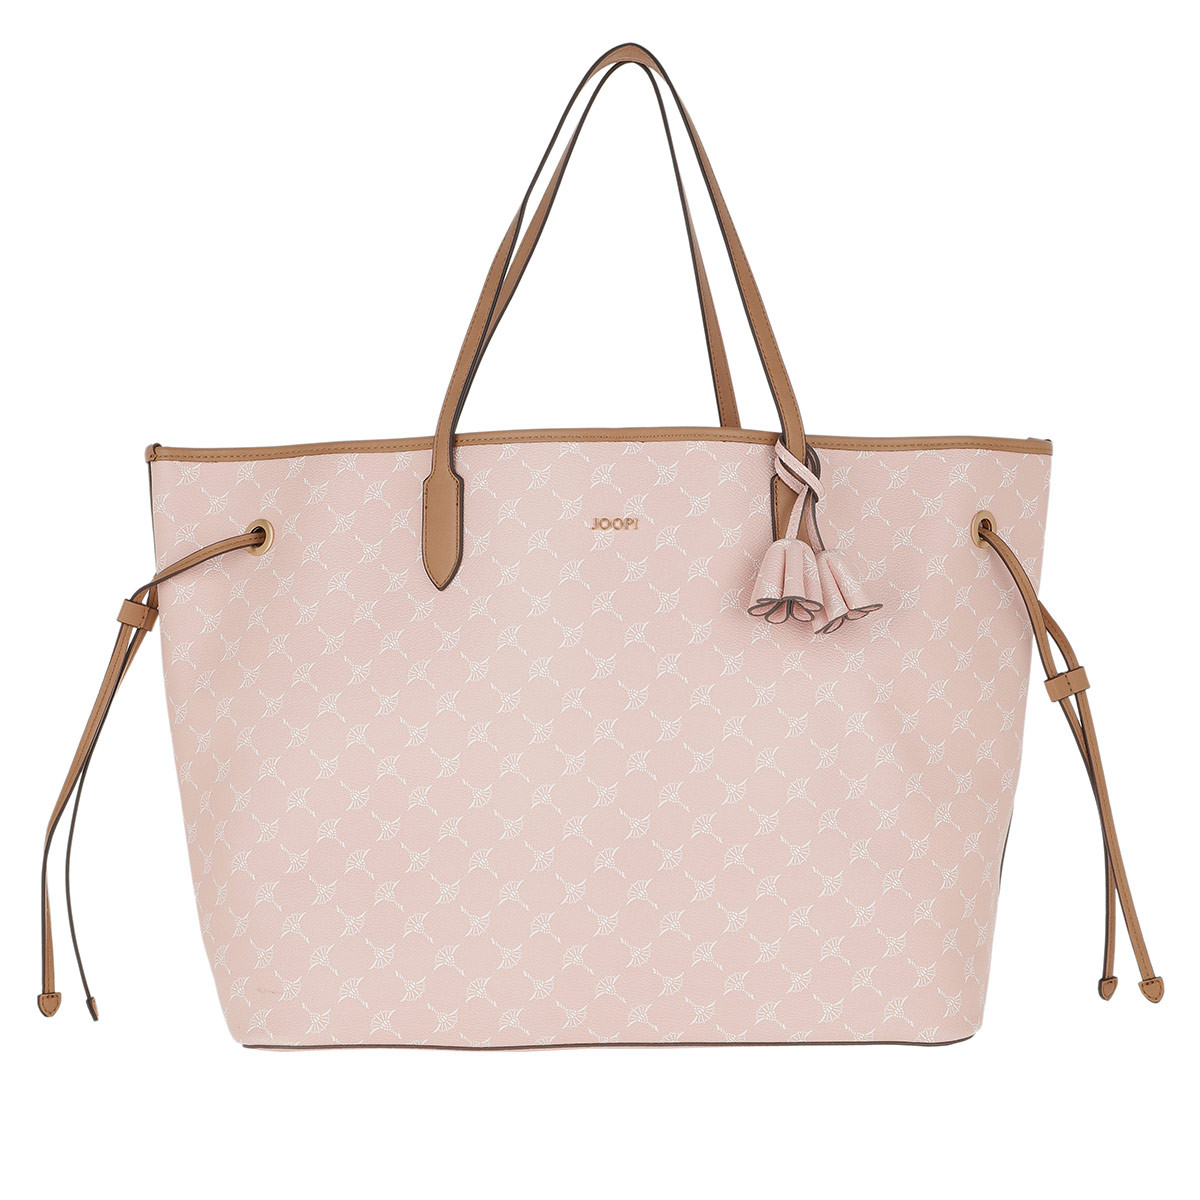 JOOP! Shopper - Cortina Lara Shopper Light Pink - in rosa - für Damen